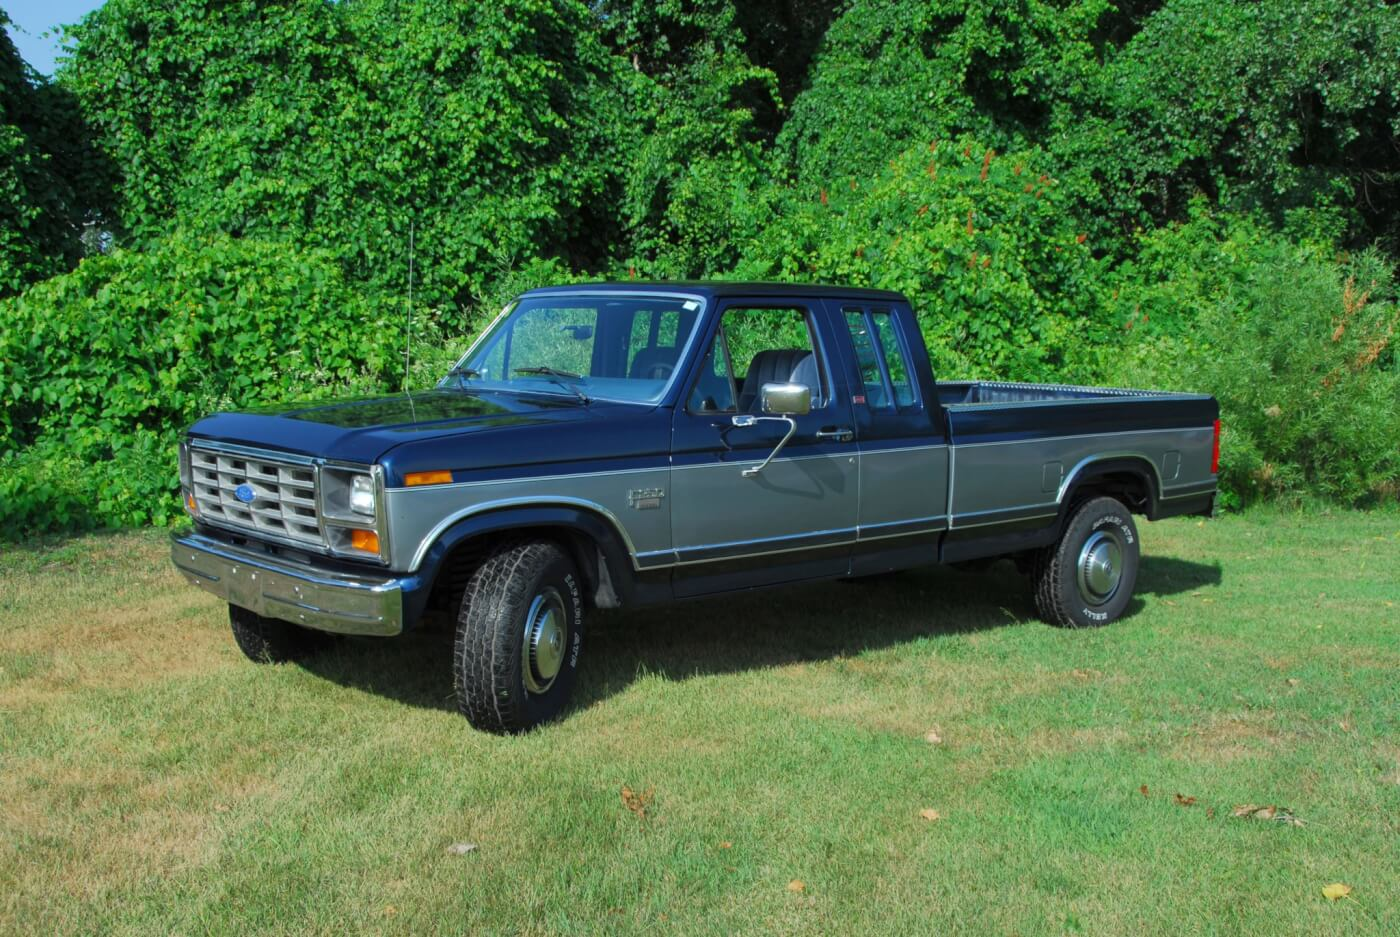 Fords 1st Diesel Pickup Engine 1983 Chevy Silverado Crew Cab Top Of The Line Was Xlt To Which Lariat Added Shown